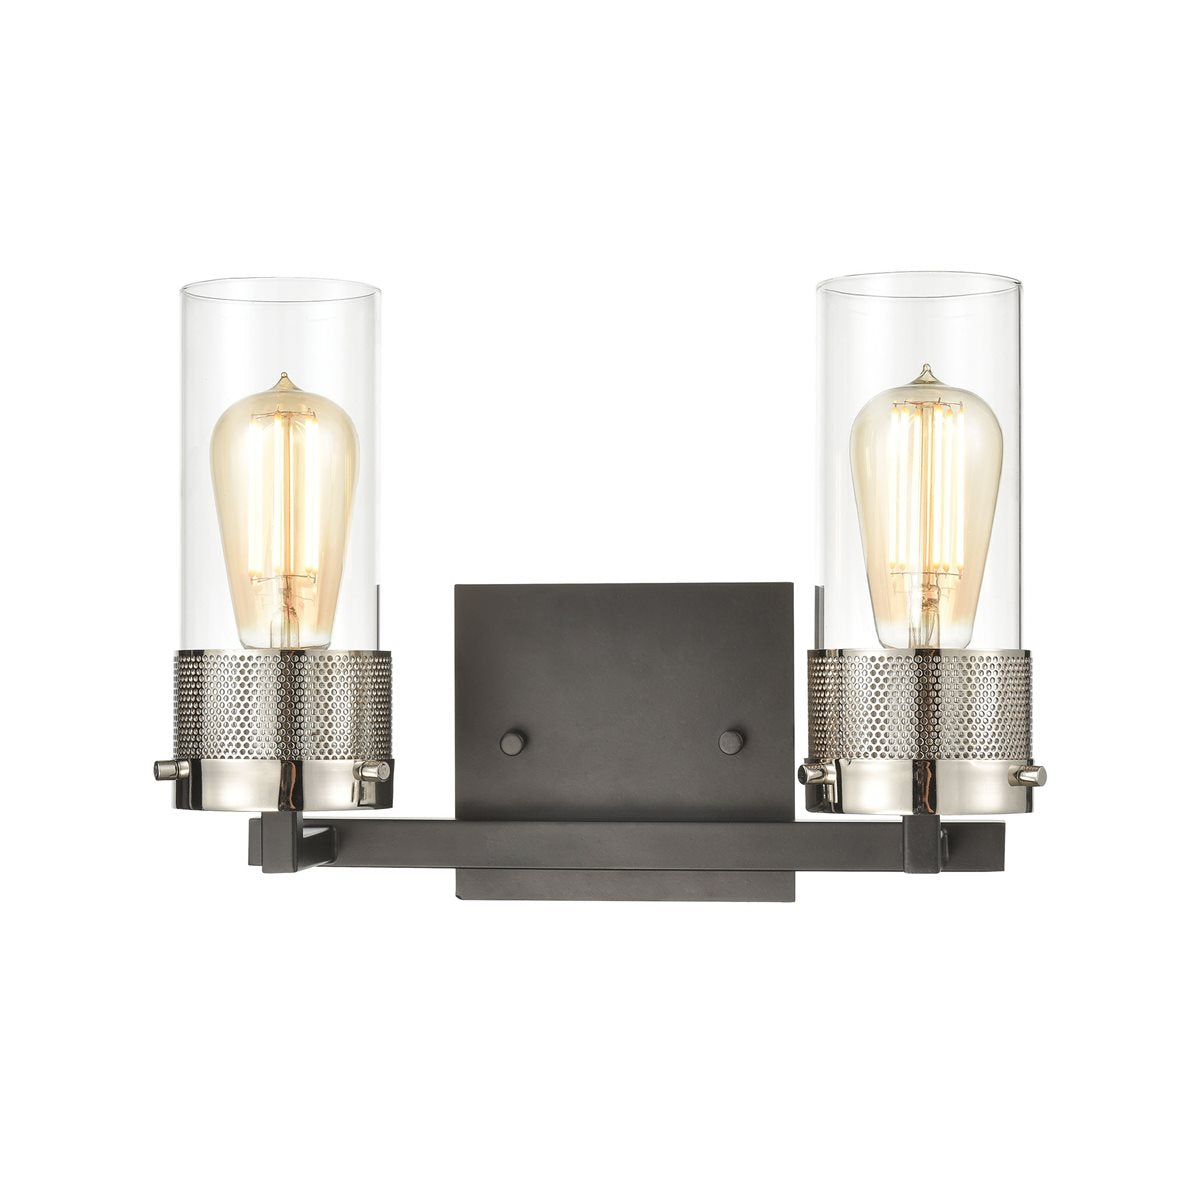 Lovecup Matte Black Bathroom Vanity Lights 2 Lights Lovecup